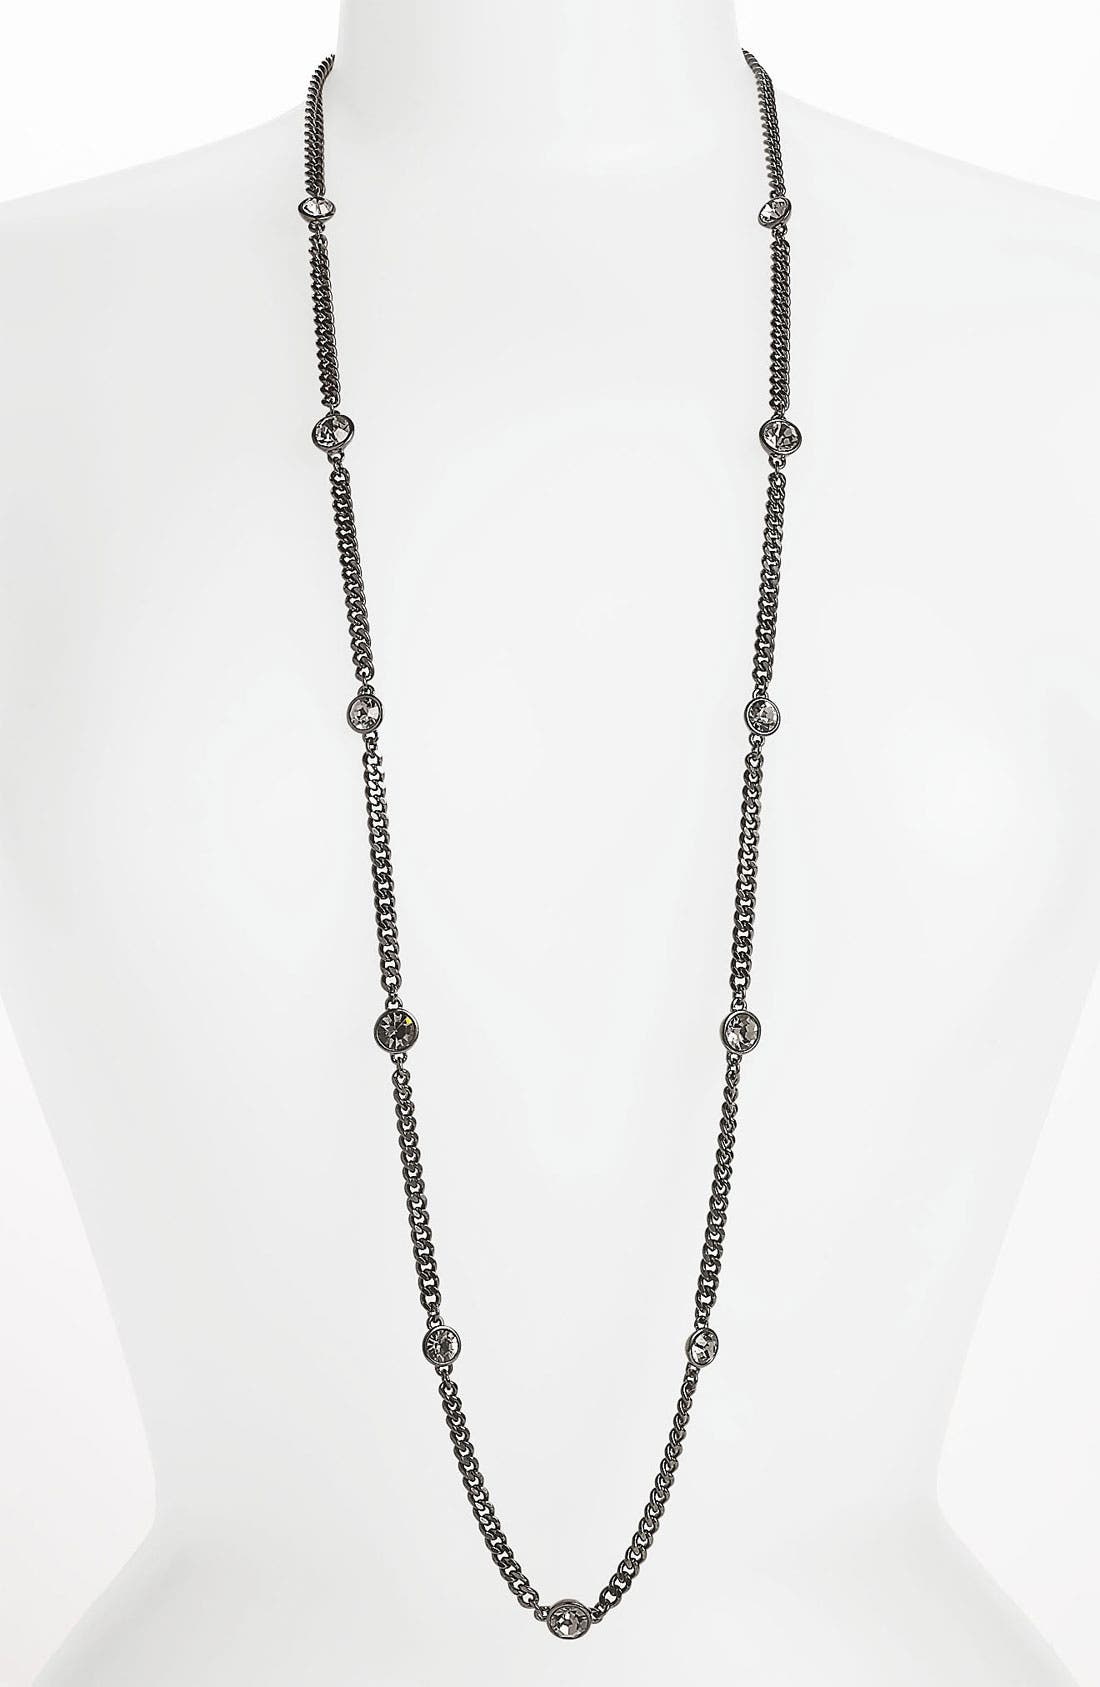 Alternate Image 1 Selected - Givenchy Long Station Necklace (Nordstrom Exclusive)